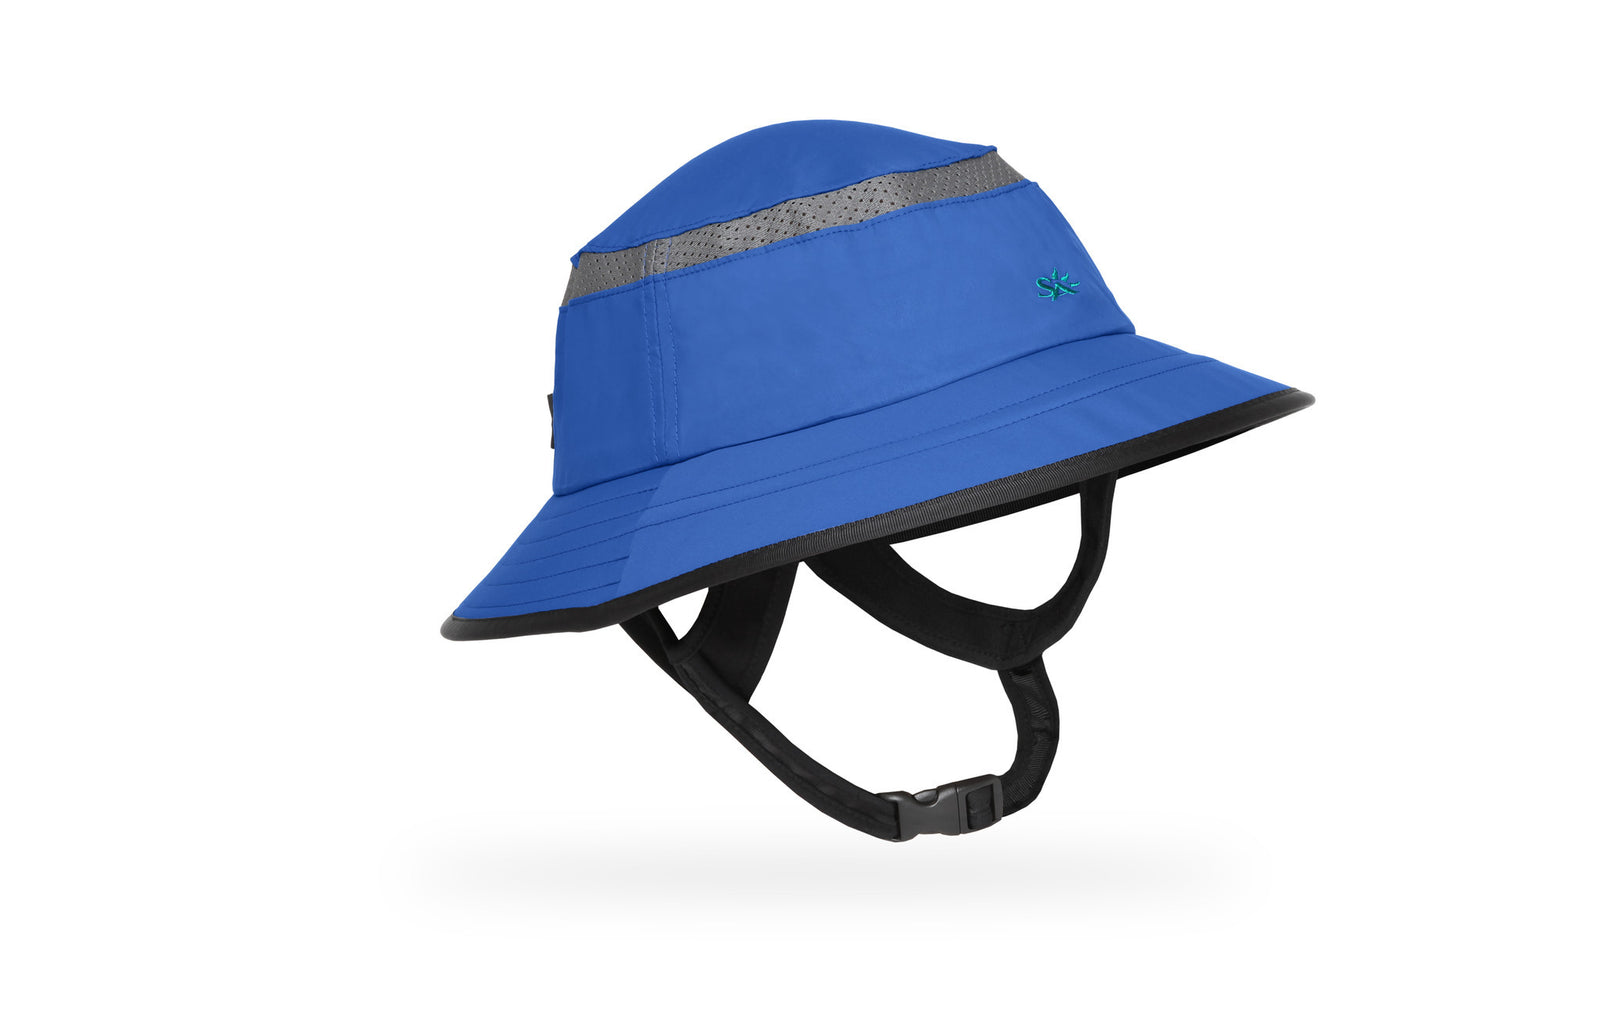 d1063909d8b Dawn Patrol Water Bucket Hat - Royal